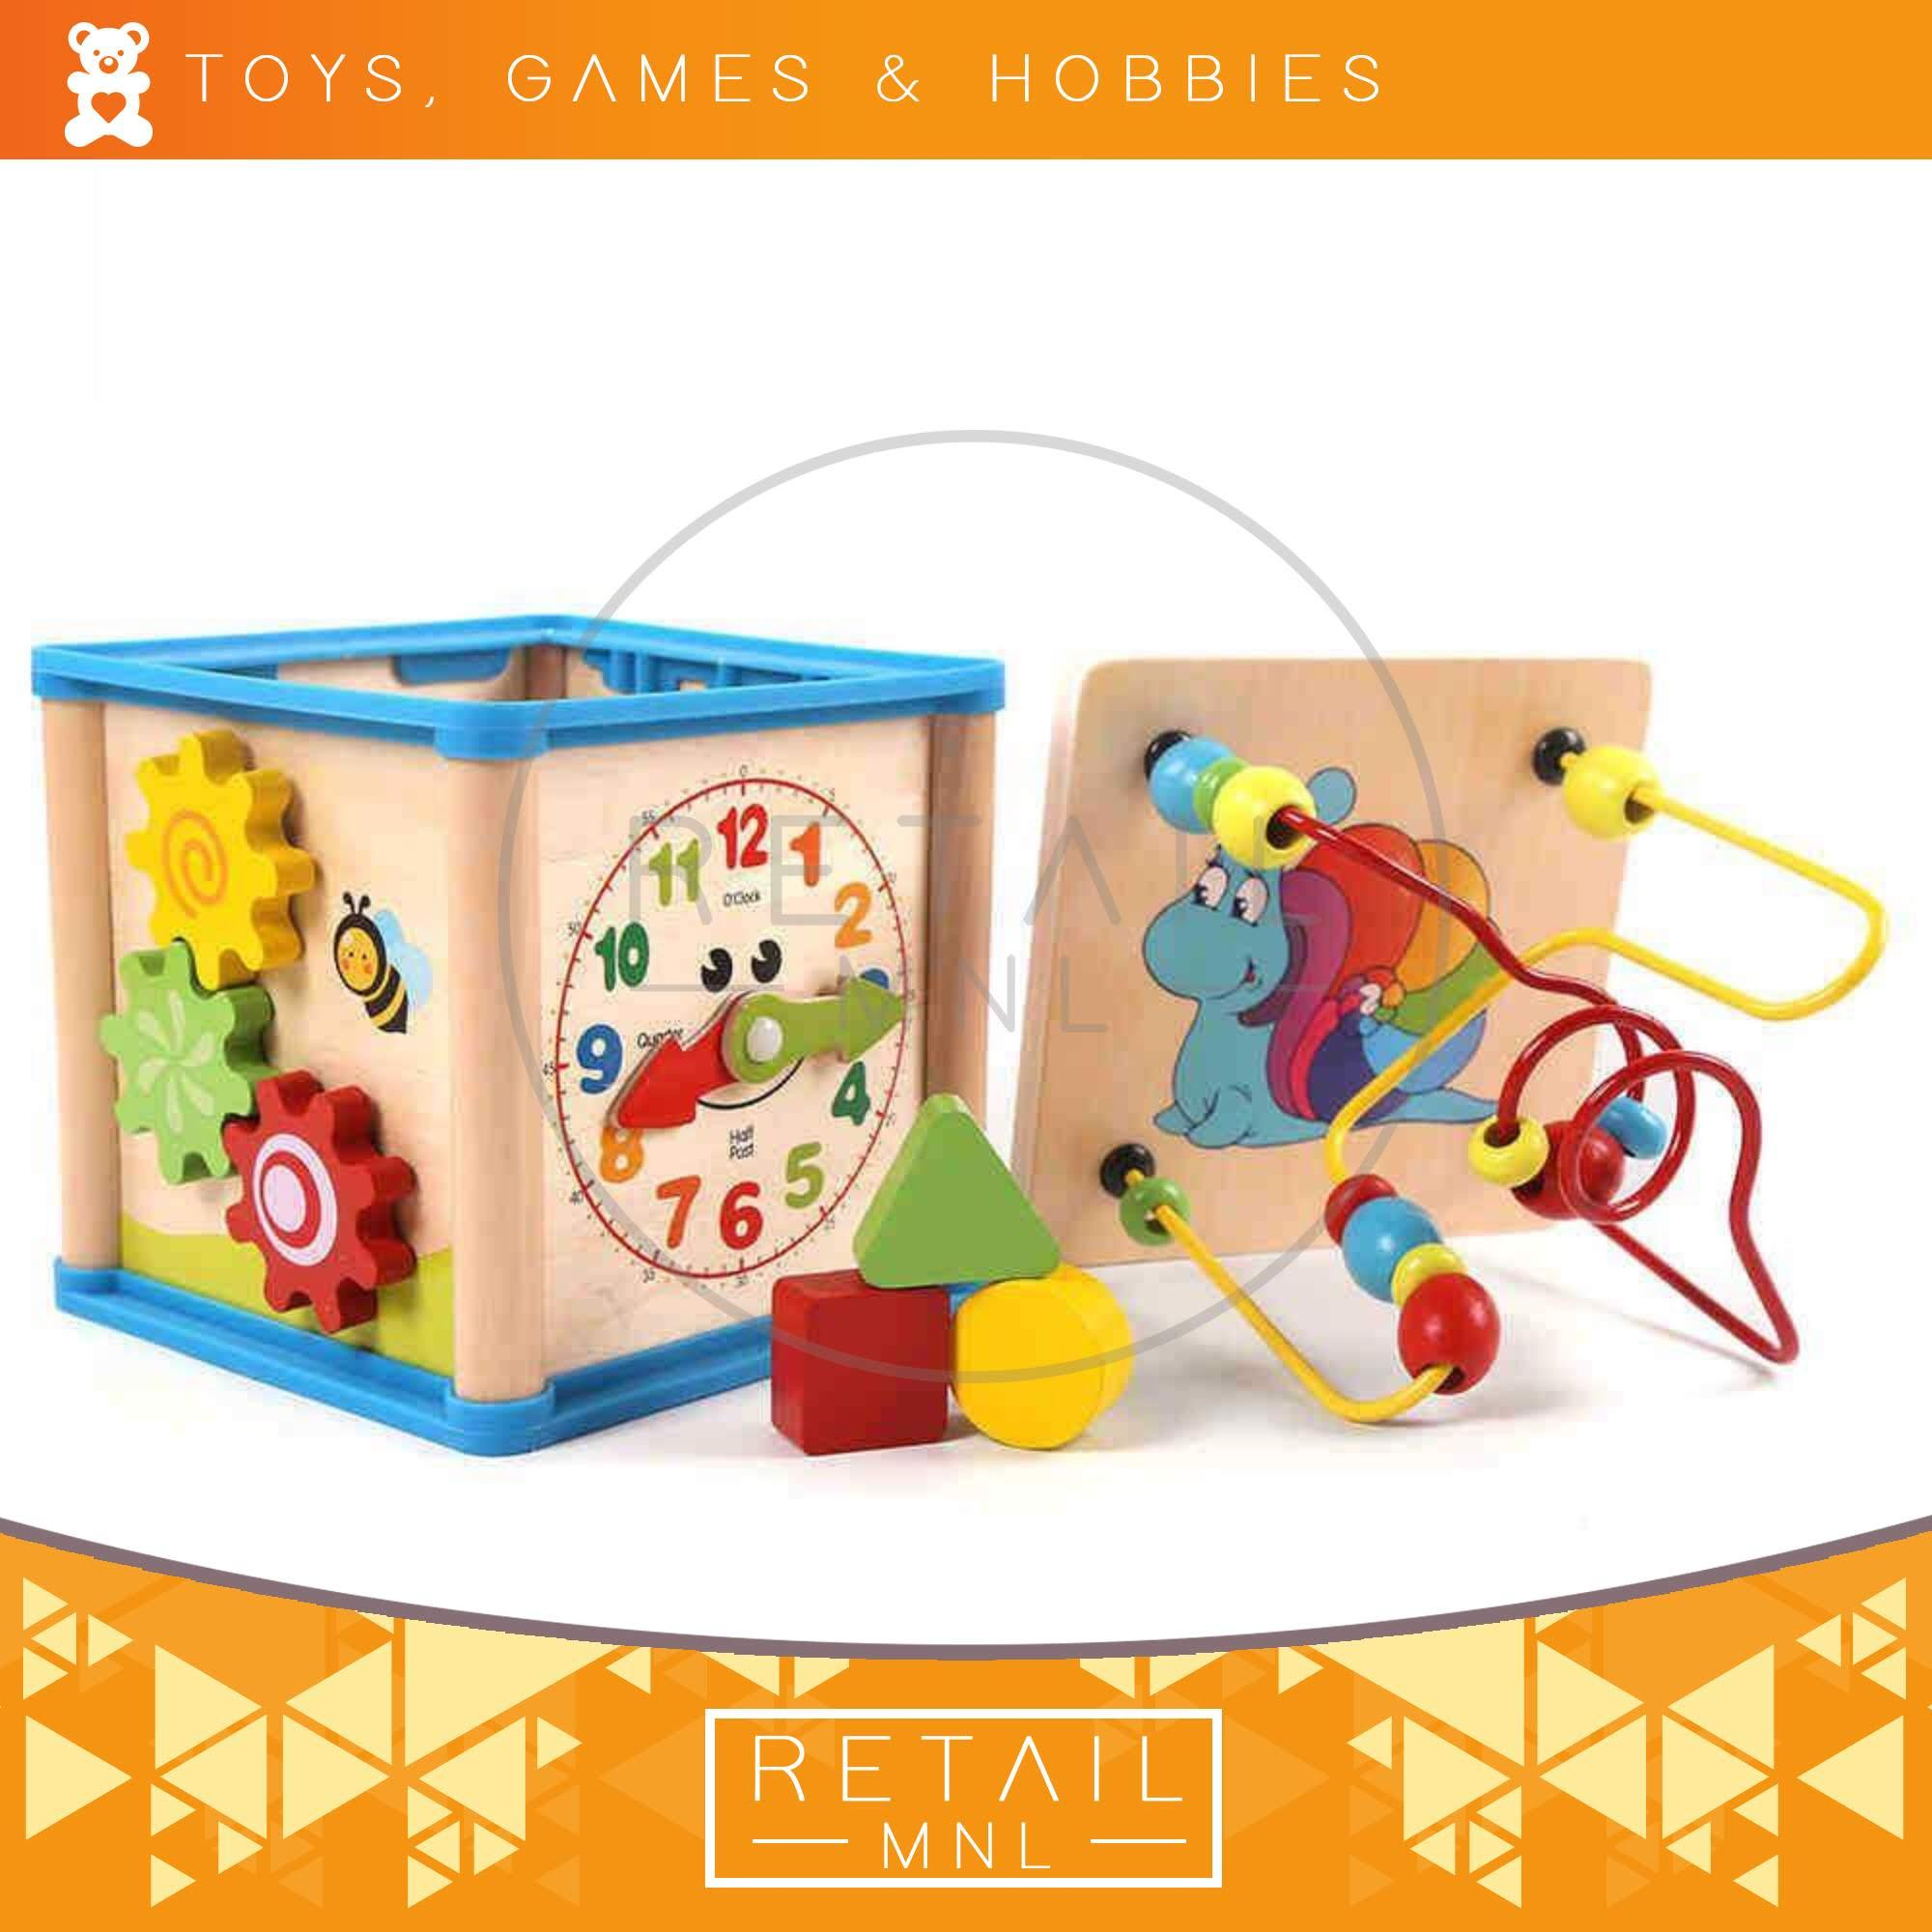 3bd6874e8a61 Retailmnl Multi-functional Beads Shape Clock Cube Educational Toy for Kids